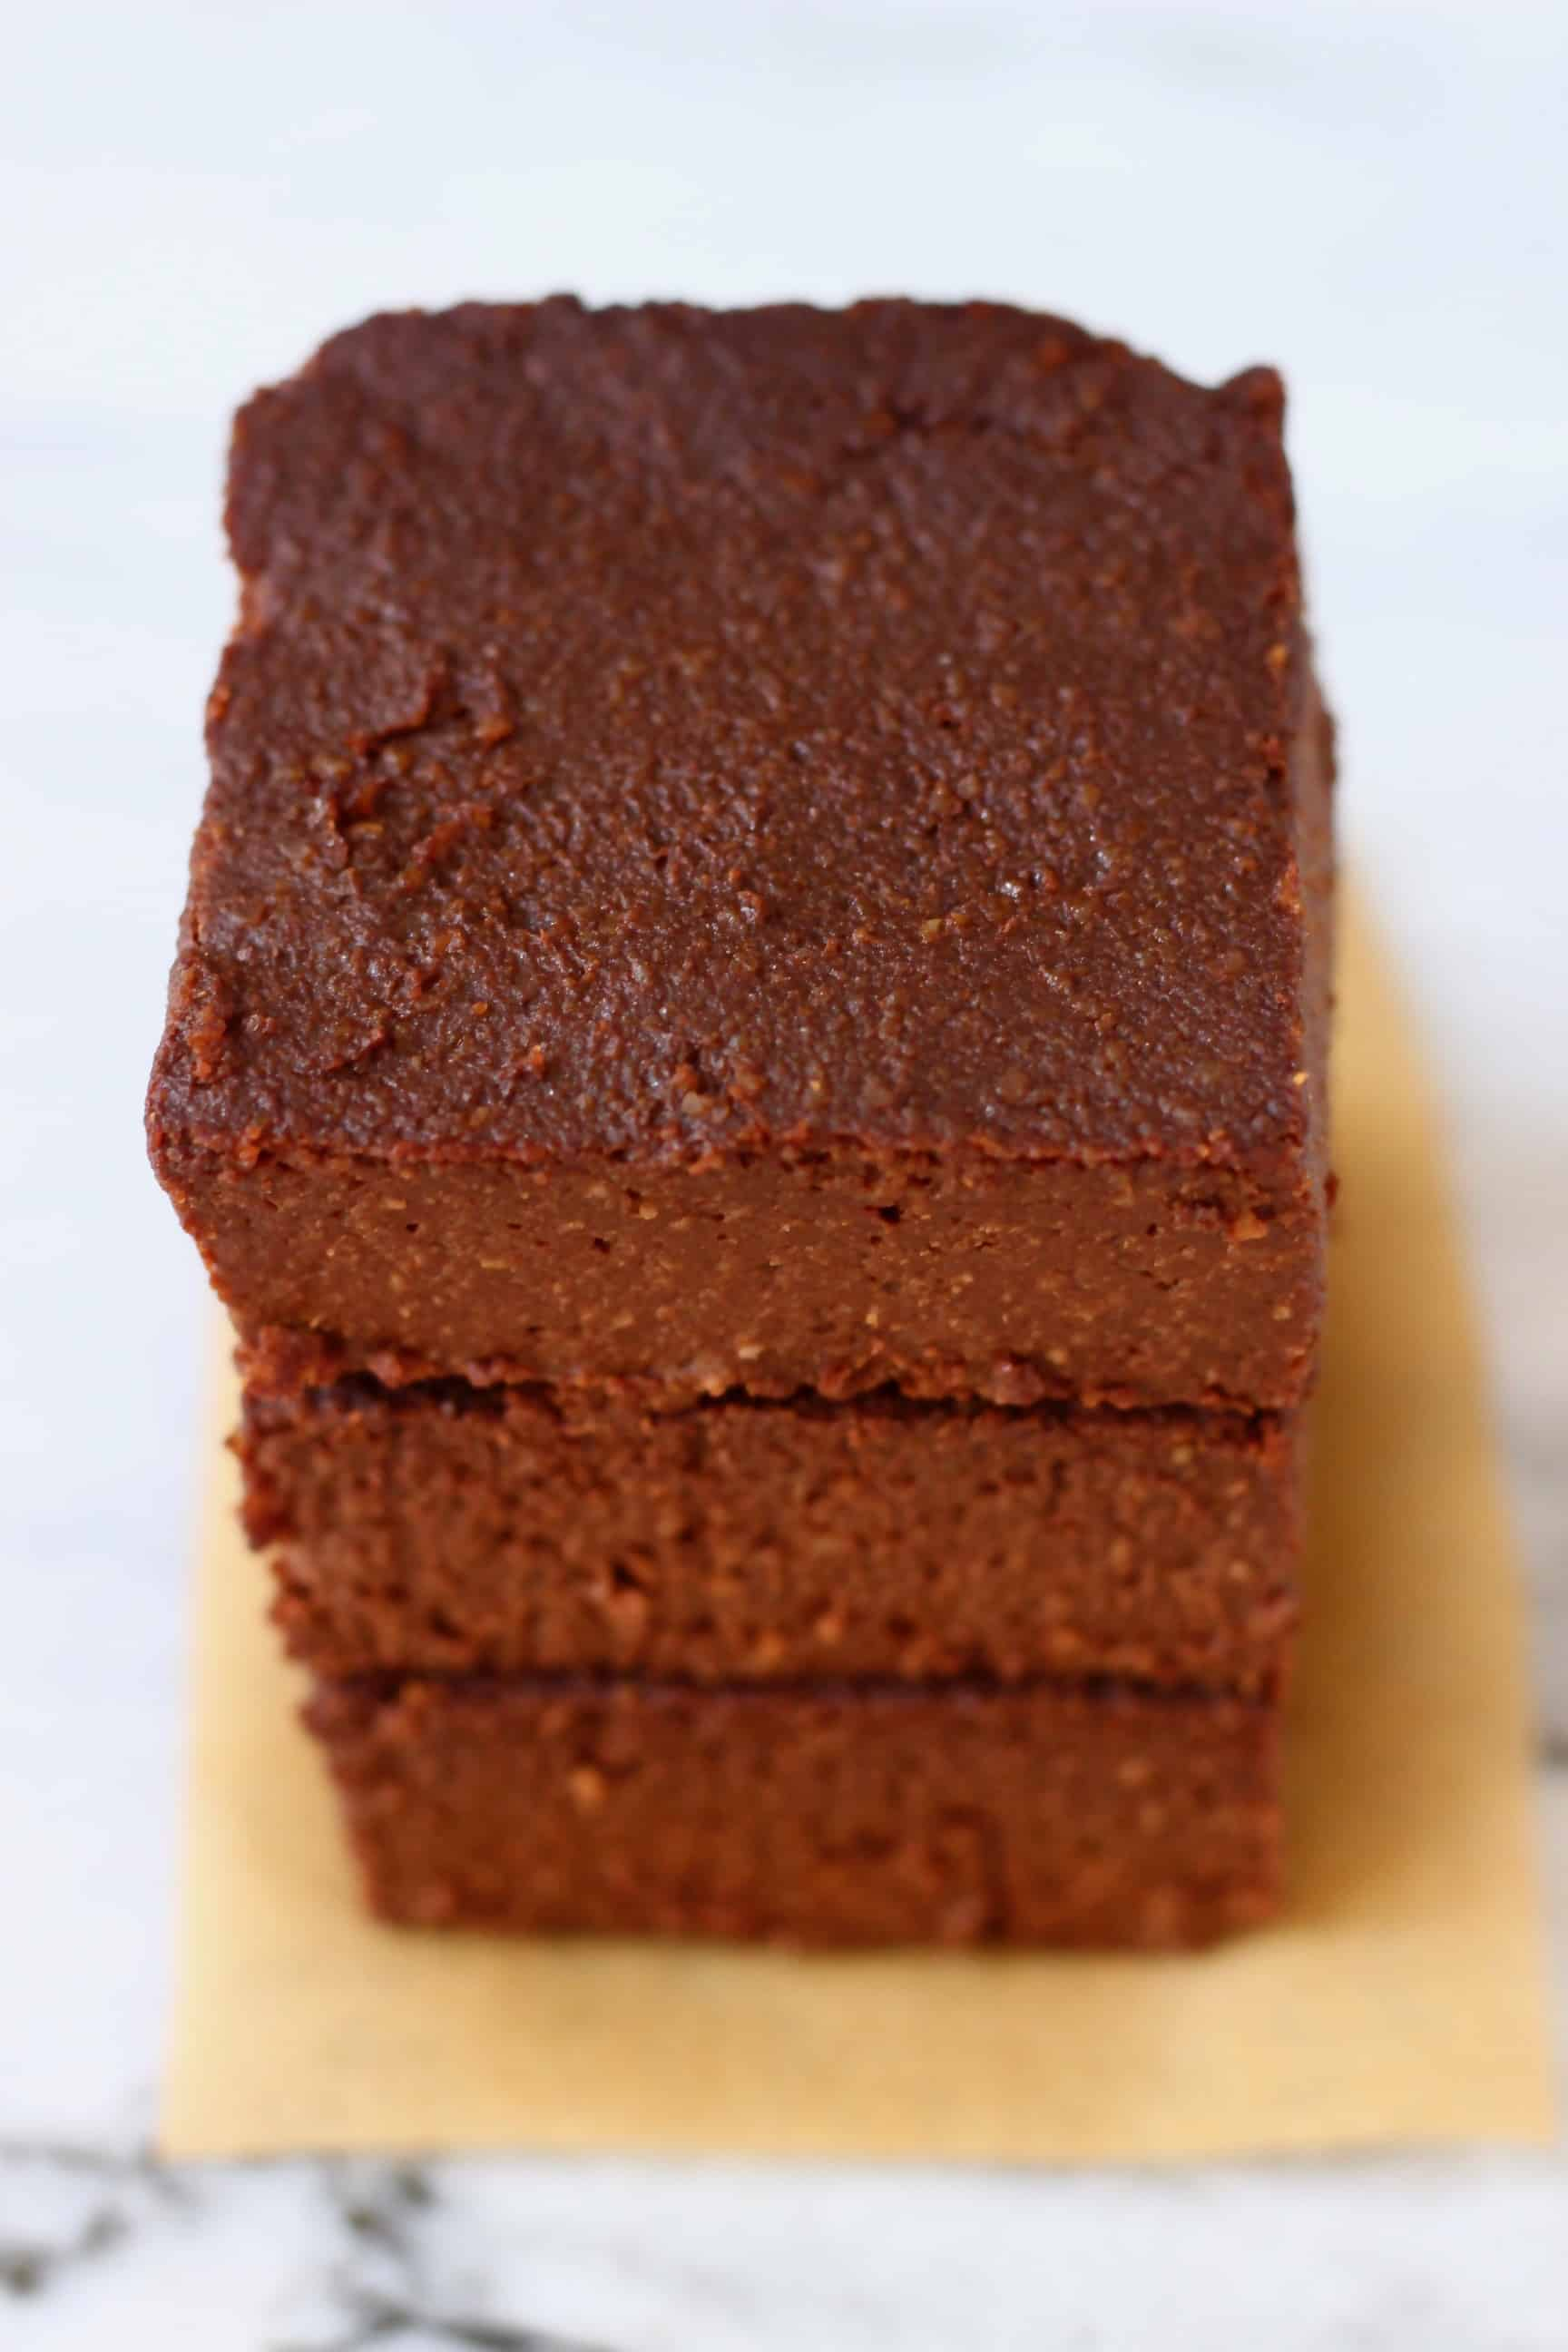 Three pumpkin brownies stacked on top of each other on a sheet of brown baking paper against a marble background